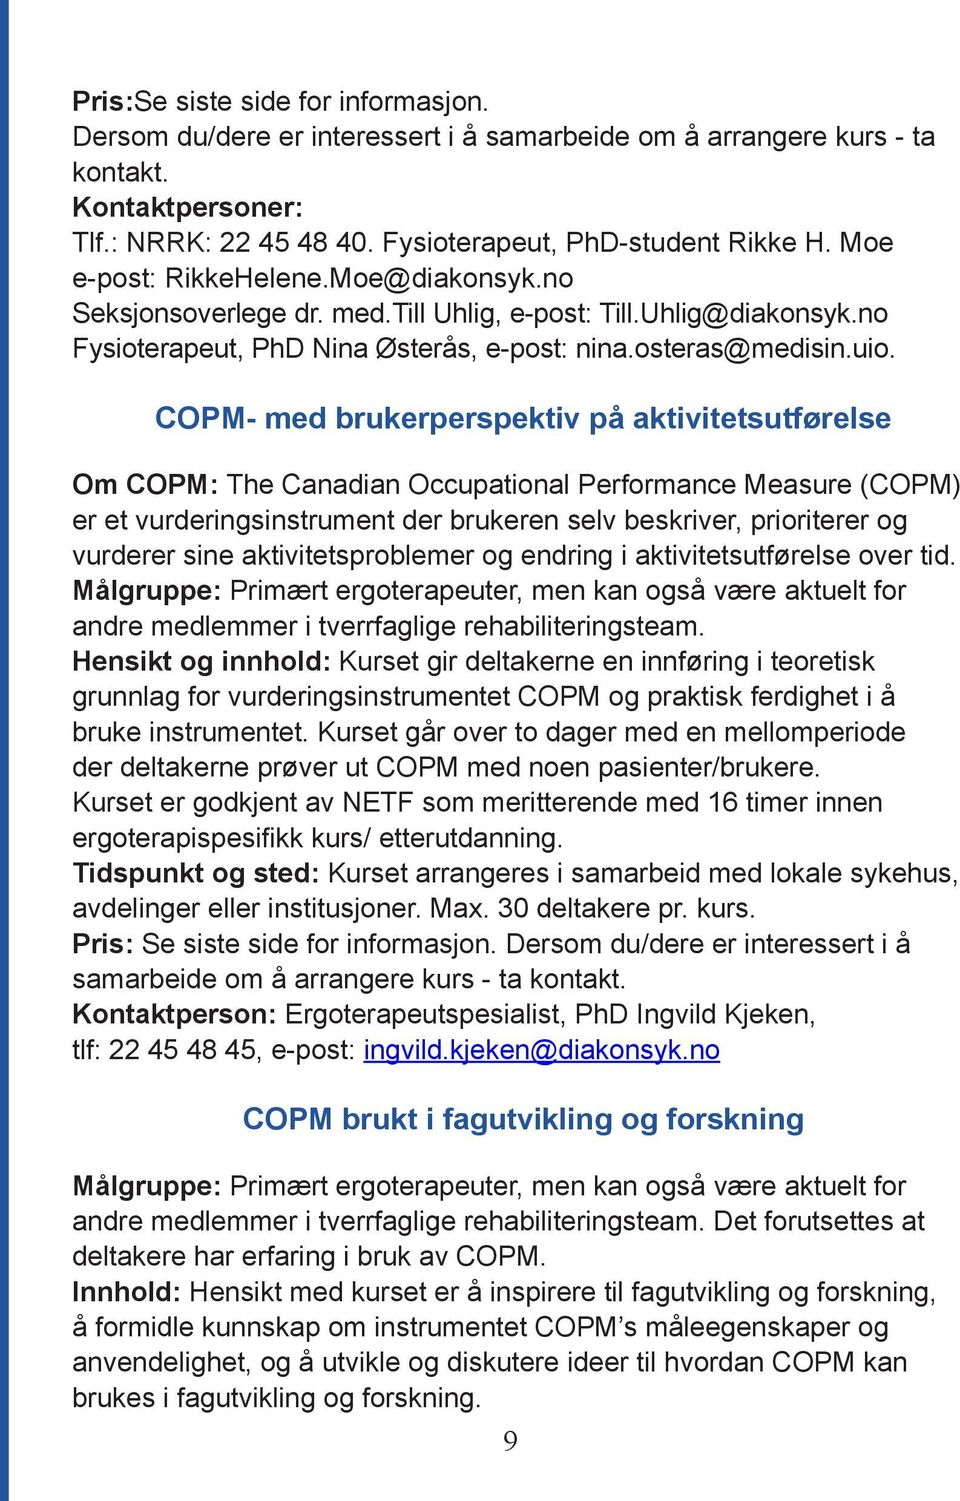 COPM- med brukerperspektiv på aktivitetsutførelse Om COPM: The Canadian Occupational Performance Measure (COPM) er et vurderingsinstrument der brukeren selv beskriver, prioriterer og vurderer sine